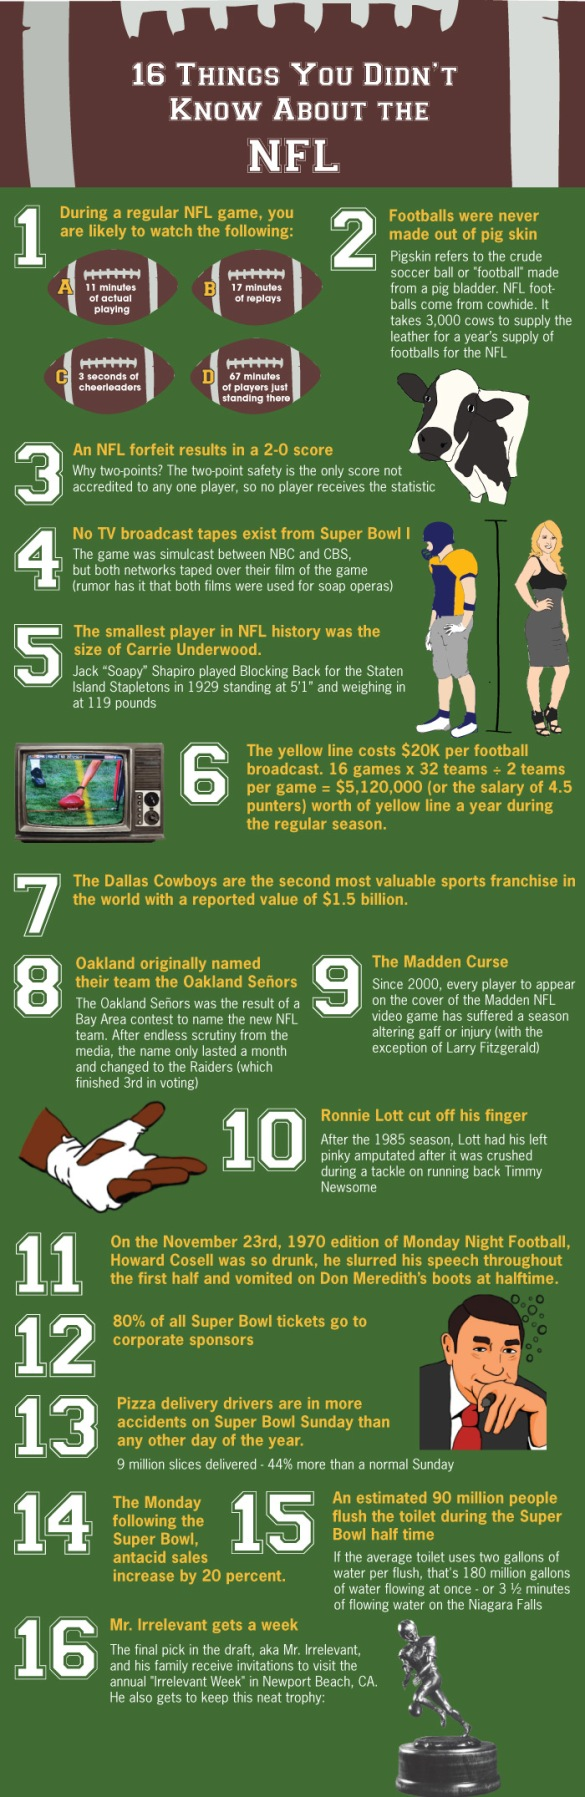 Source - SubmitInfographics.Comhttp://submitinfographics.com/all-infographics/16-things-you-didnt-know-about-the-nfl.html